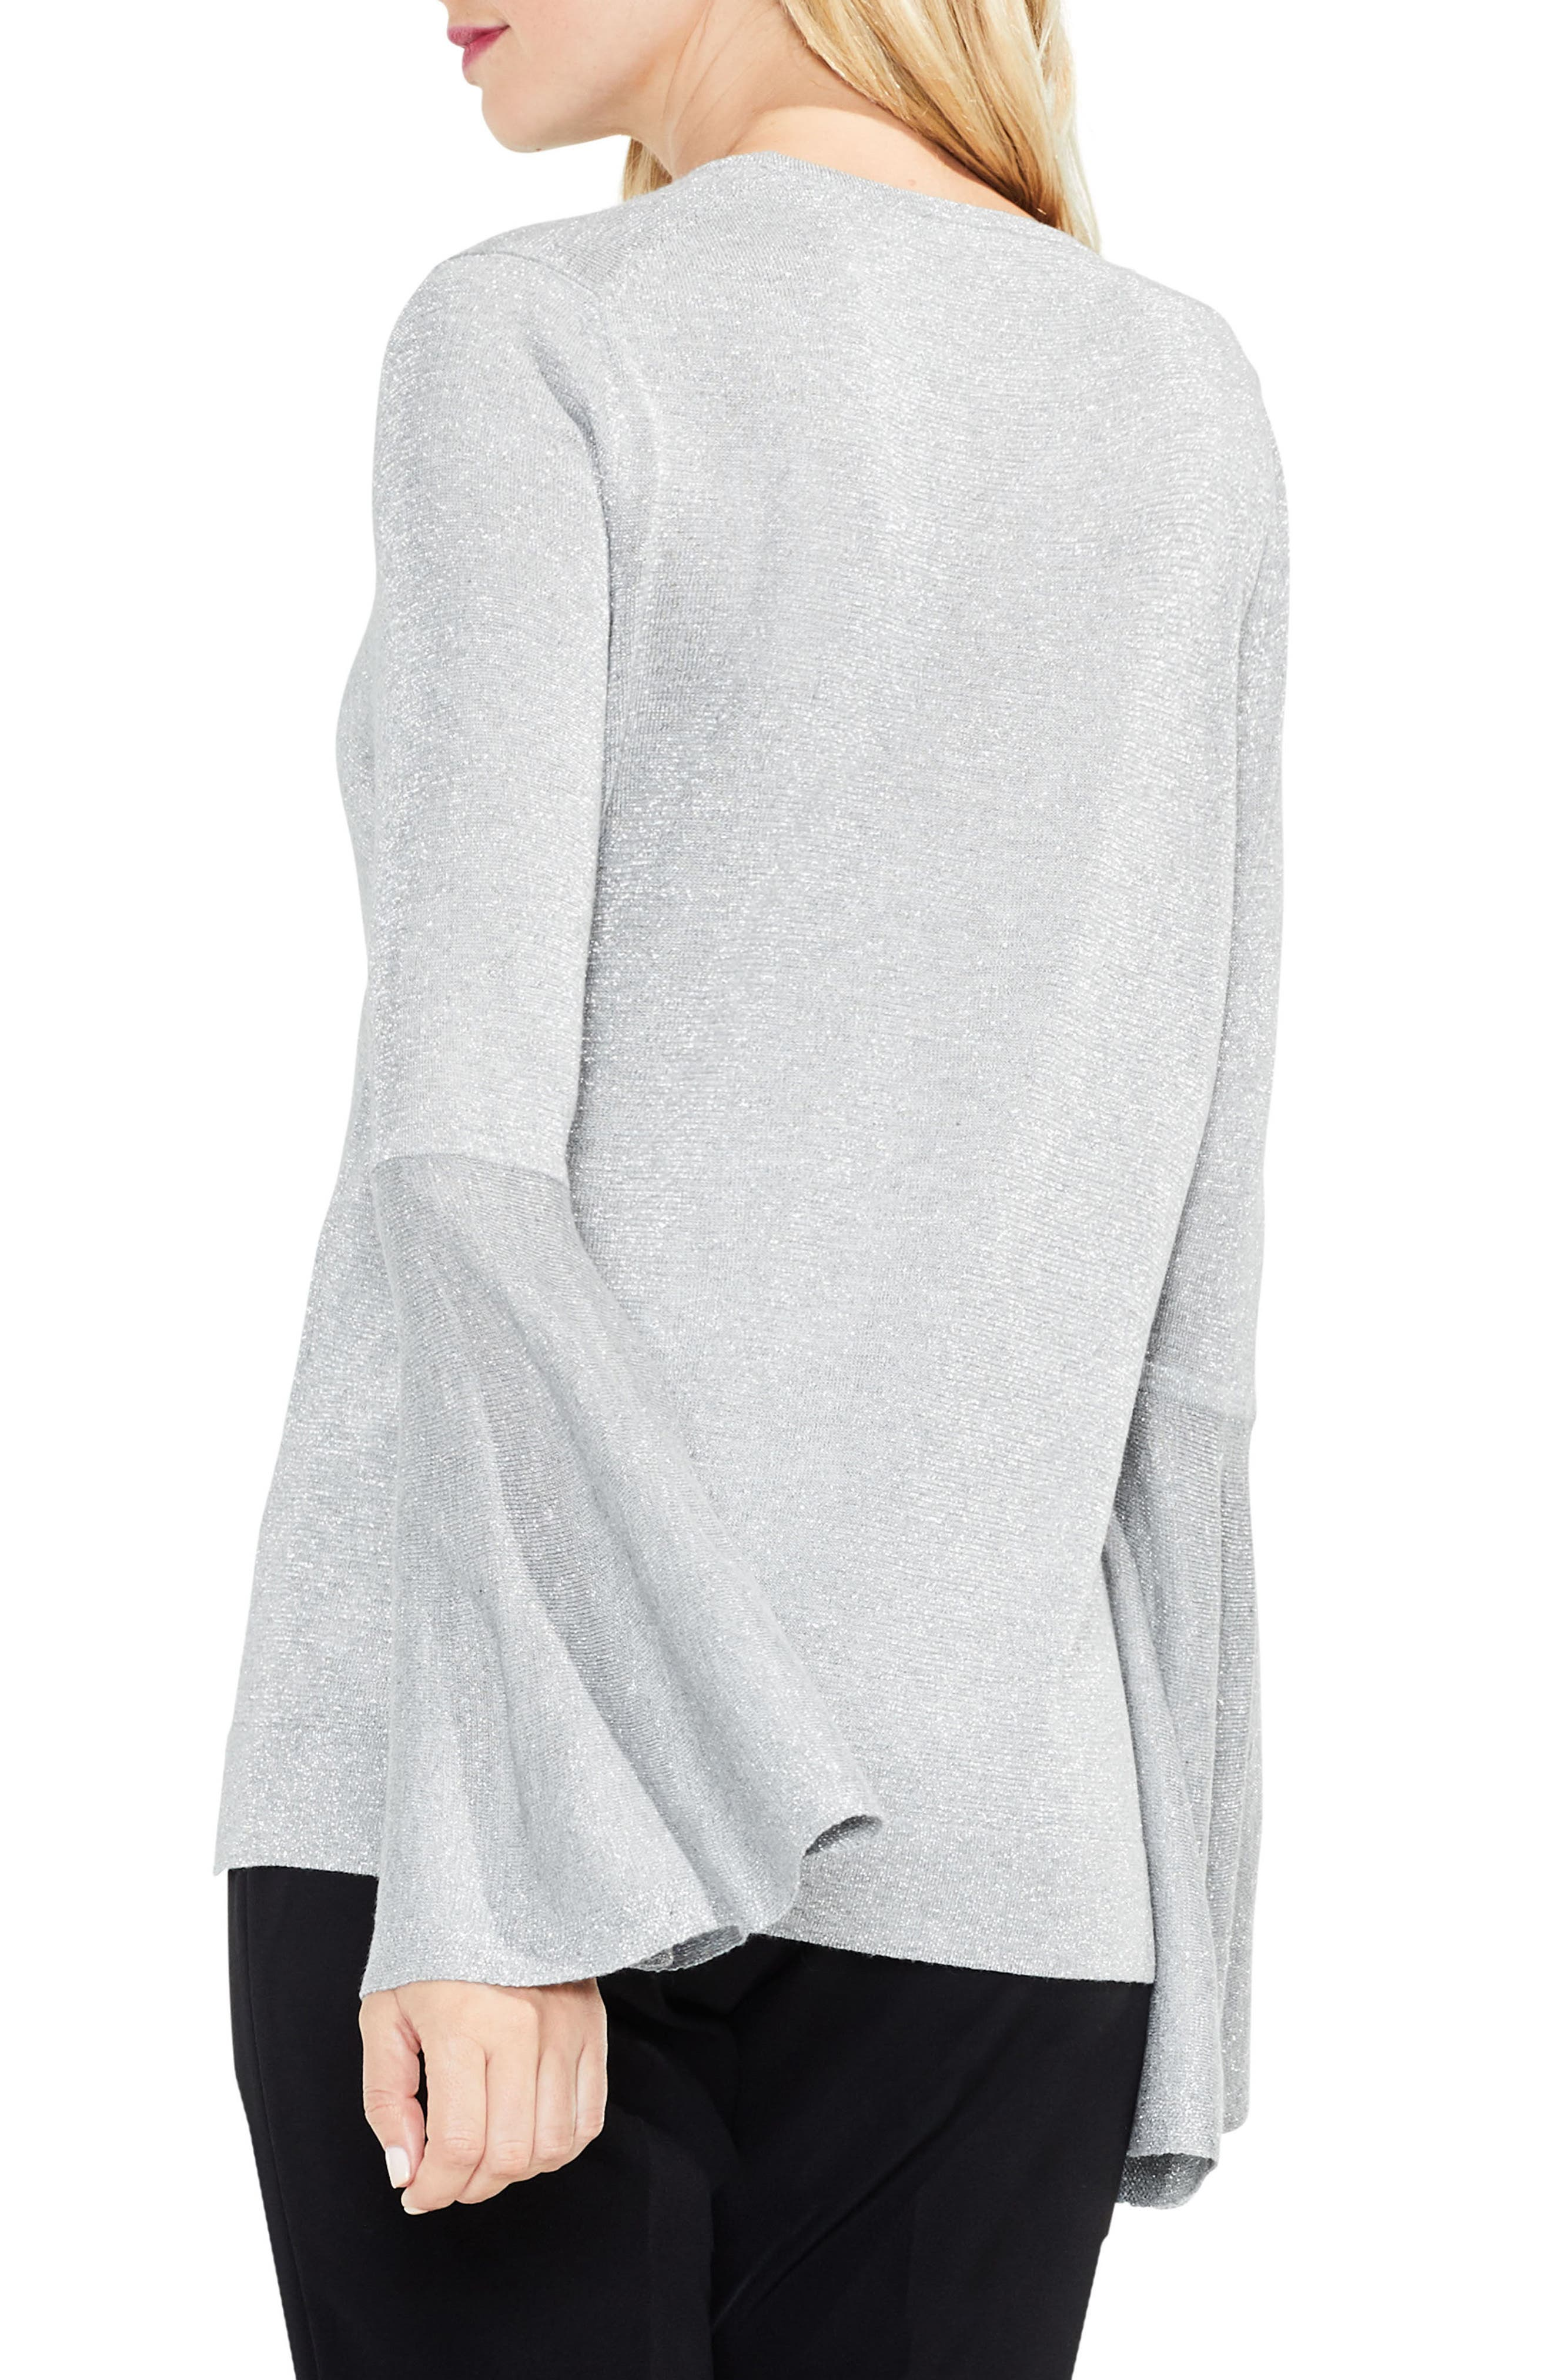 Bell Sleeve Sweater,                             Alternate thumbnail 2, color,                             Light Heather Grey